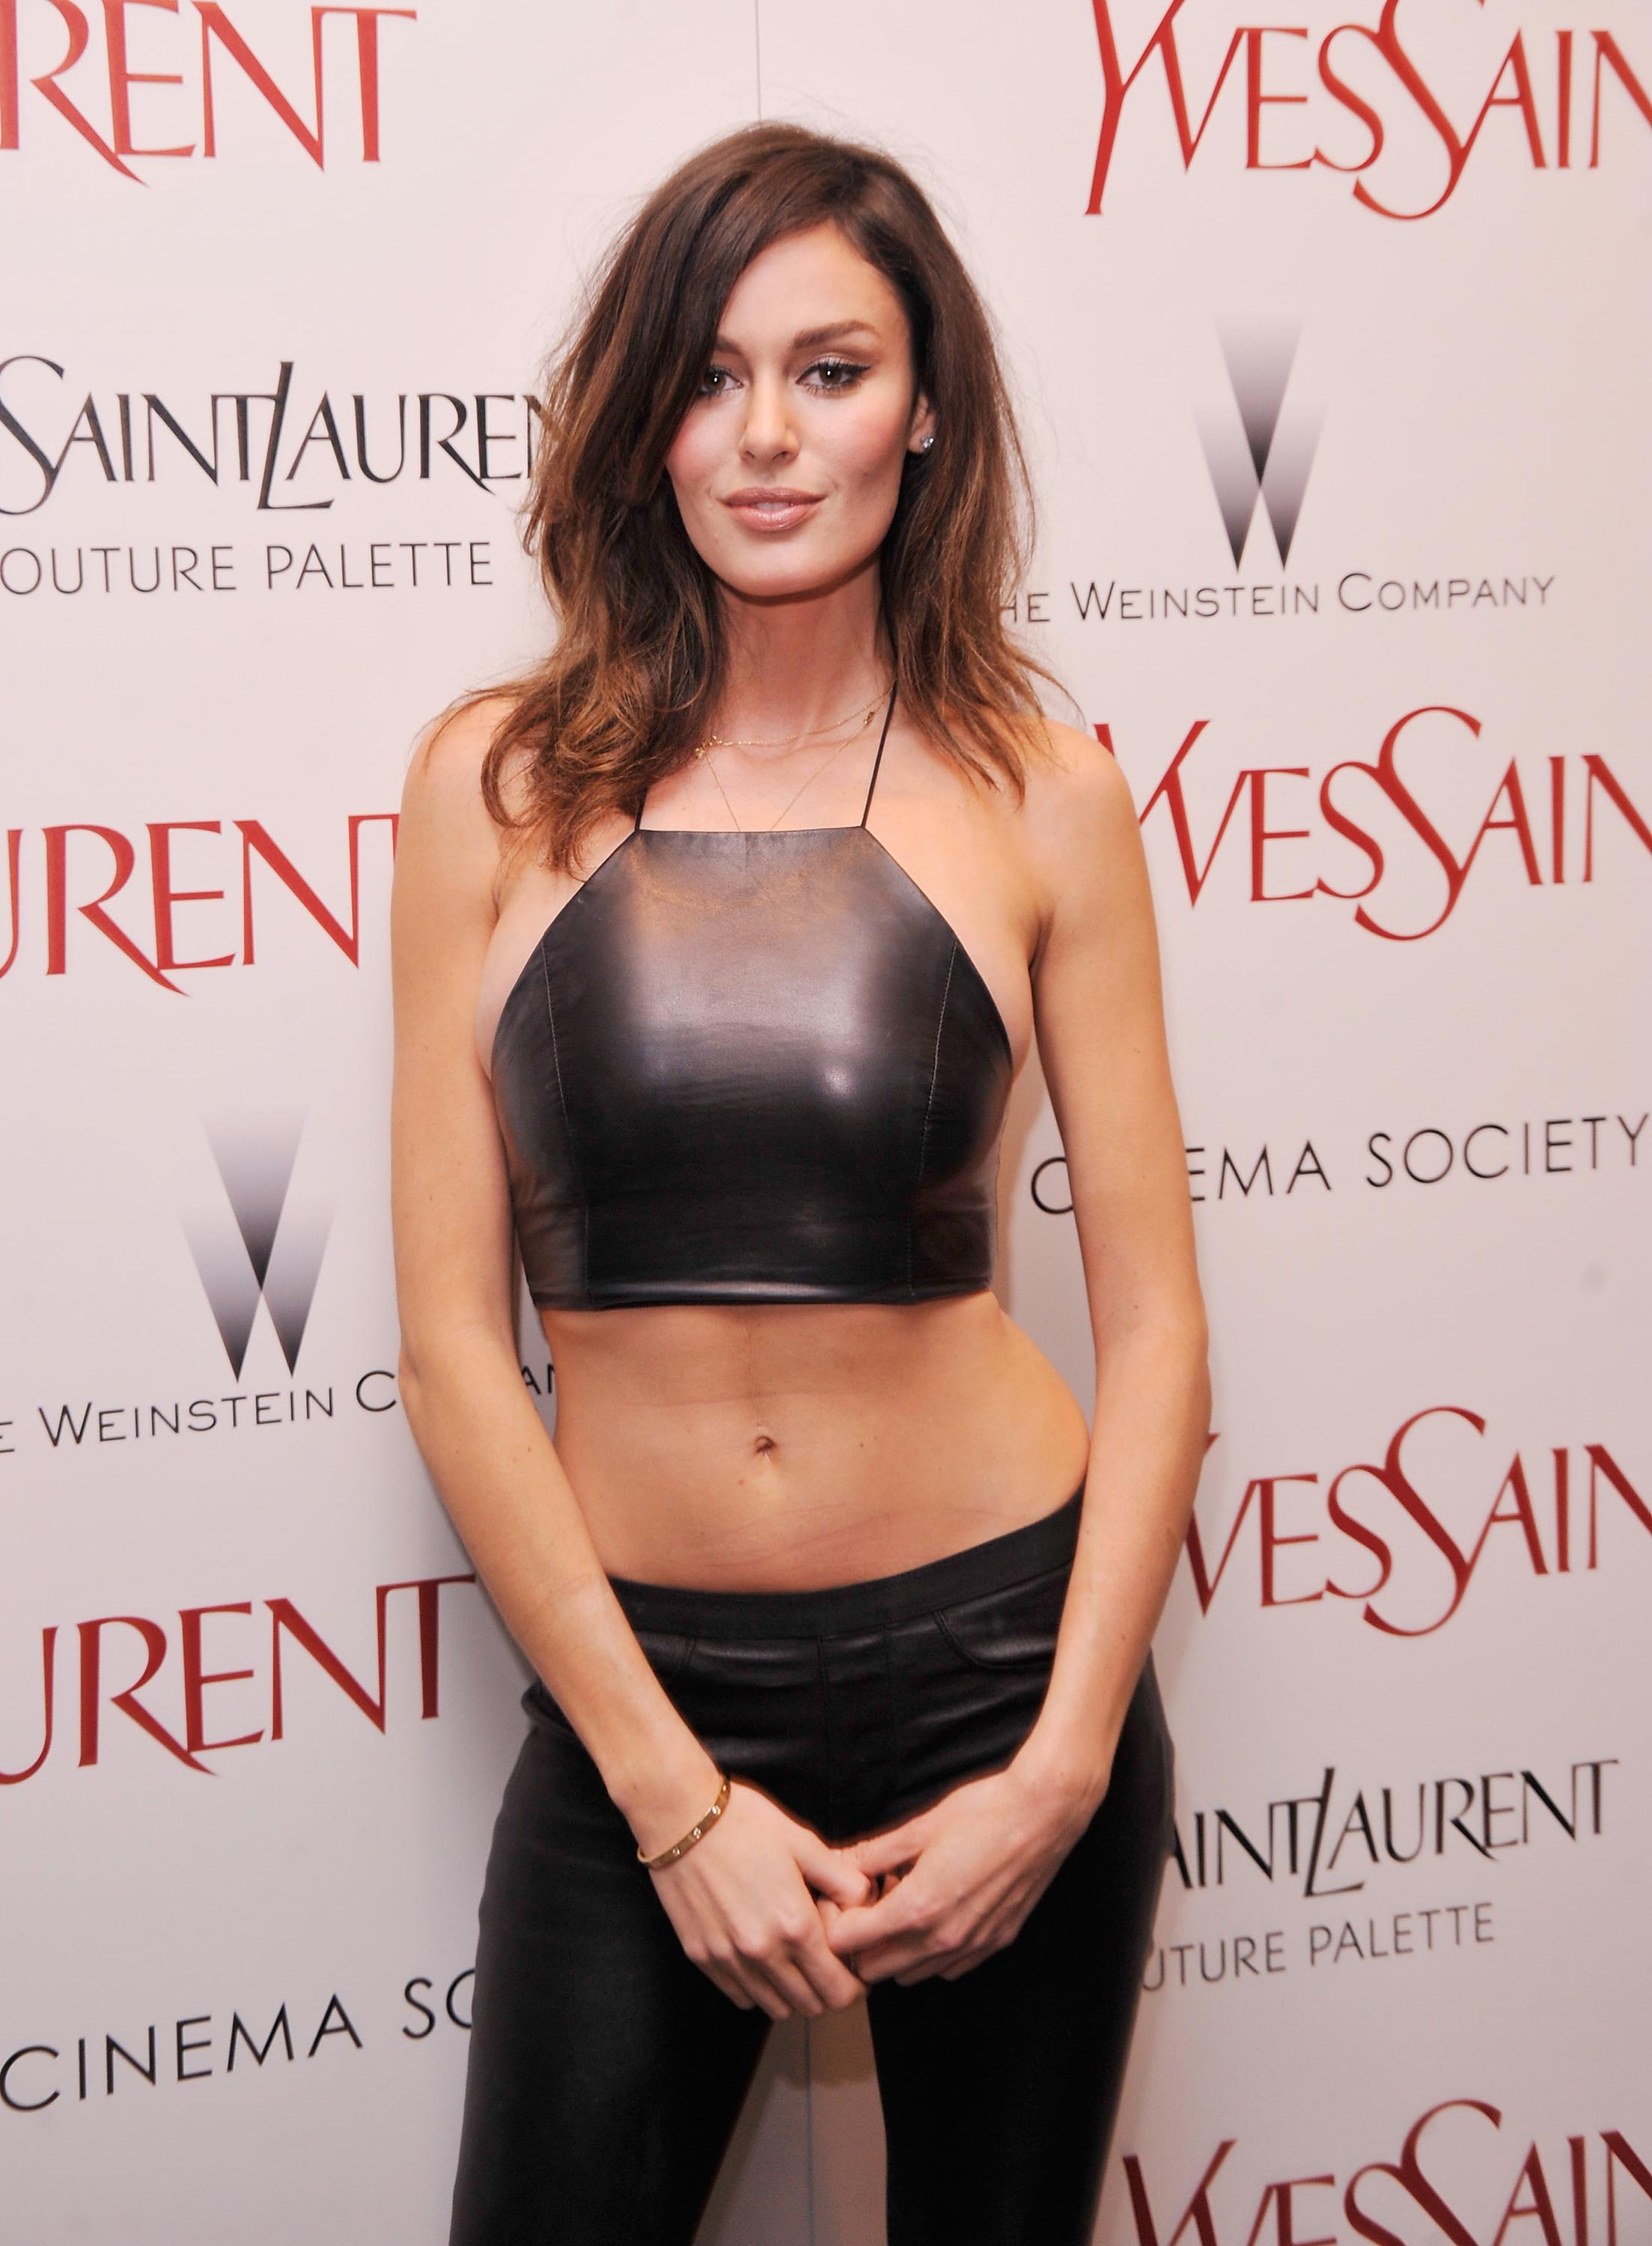 Nicole Trunfio attends the Yves Saint Laurent Couture Palette & The ...